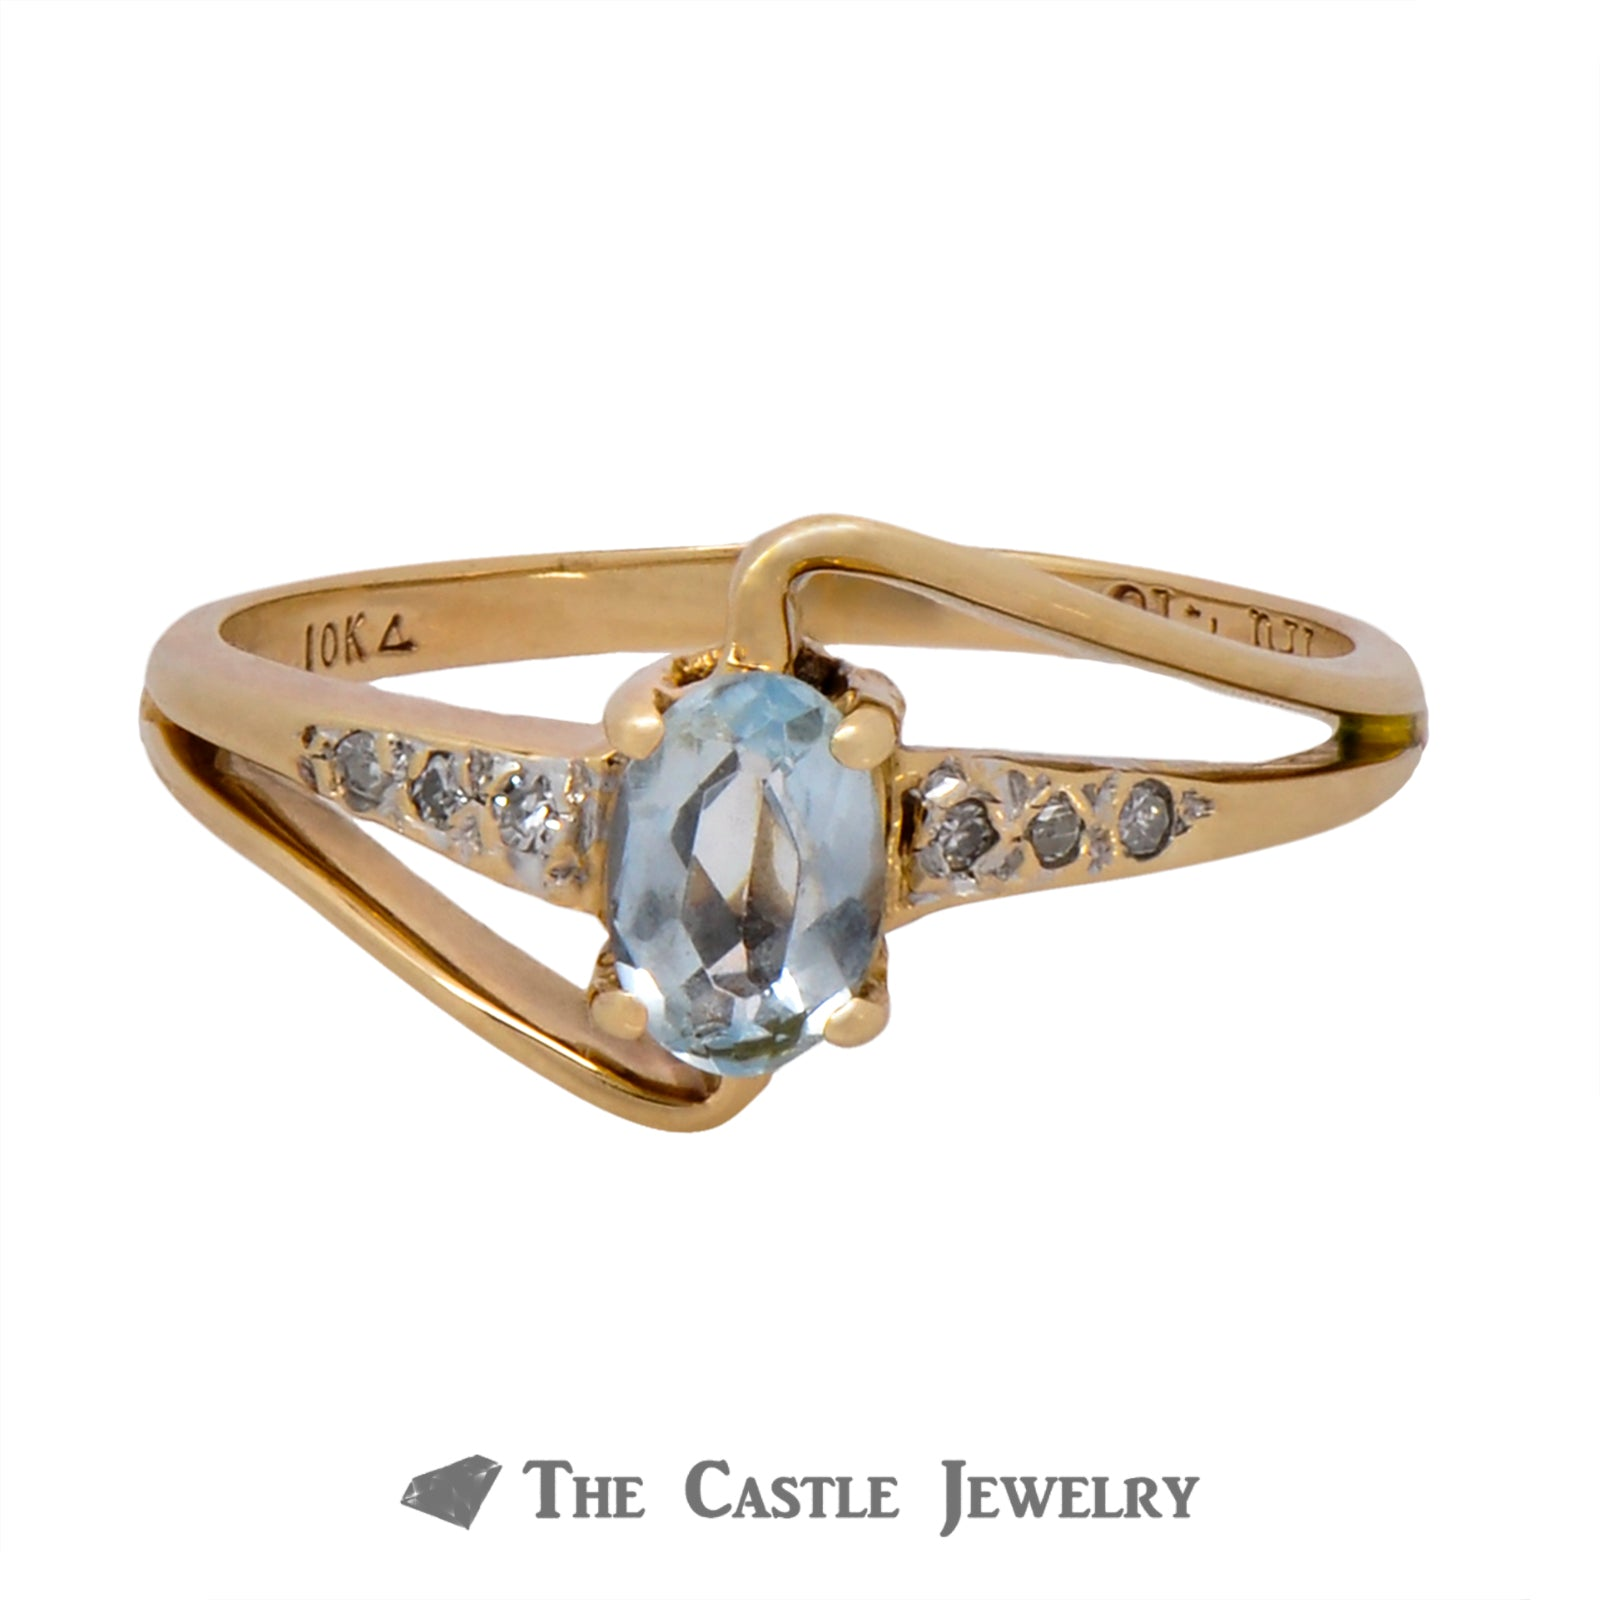 Oval Cut Aquamarine Ring with Diamond Accents in Curved Bypass Setting